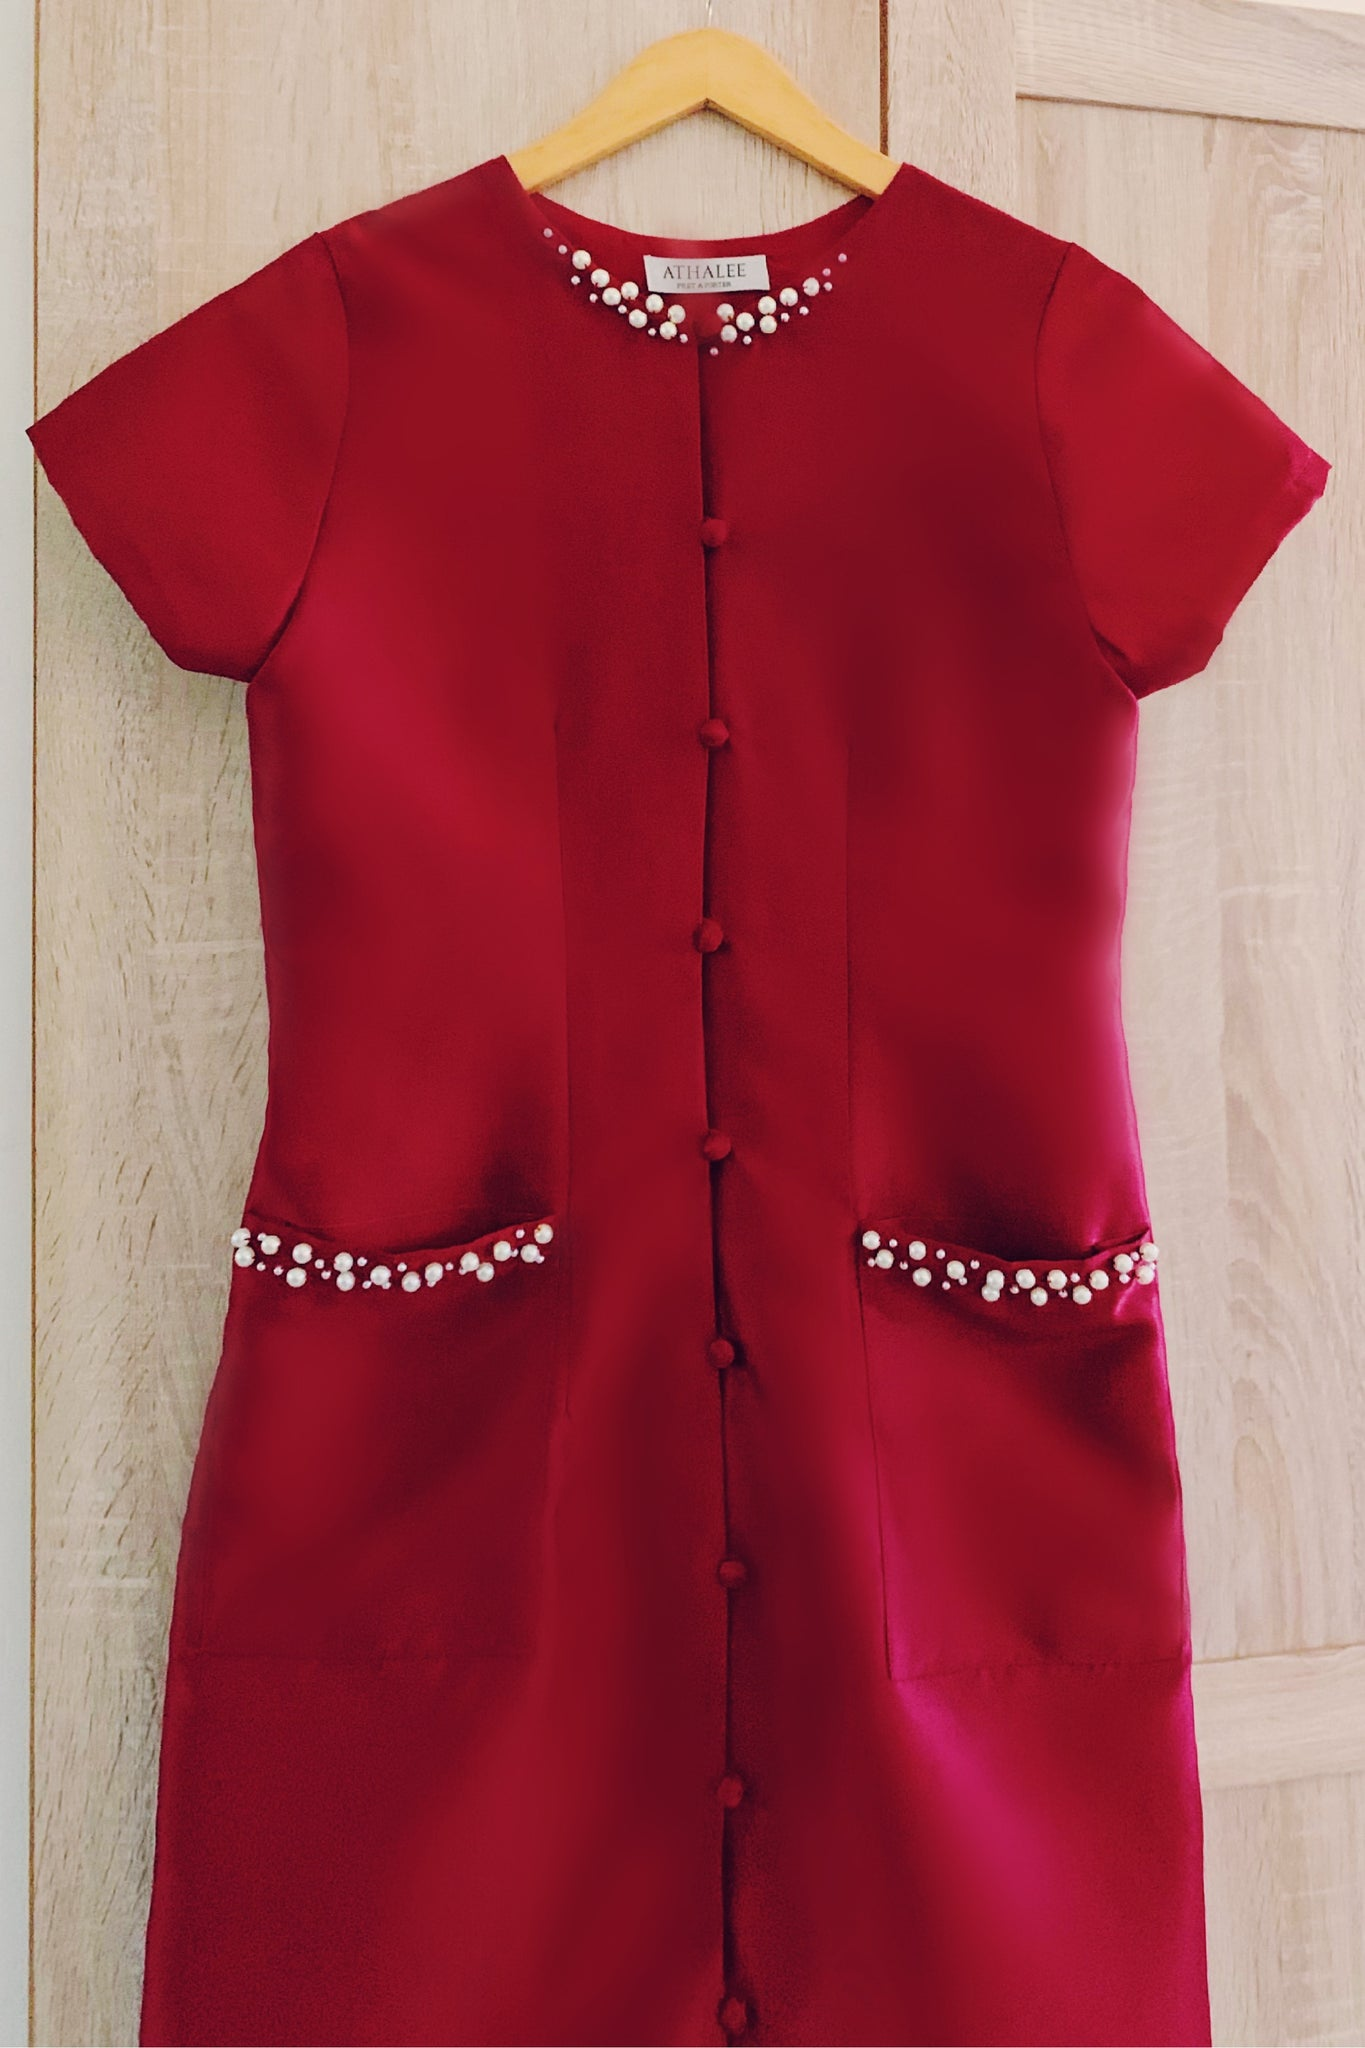 Hill dress in maroon